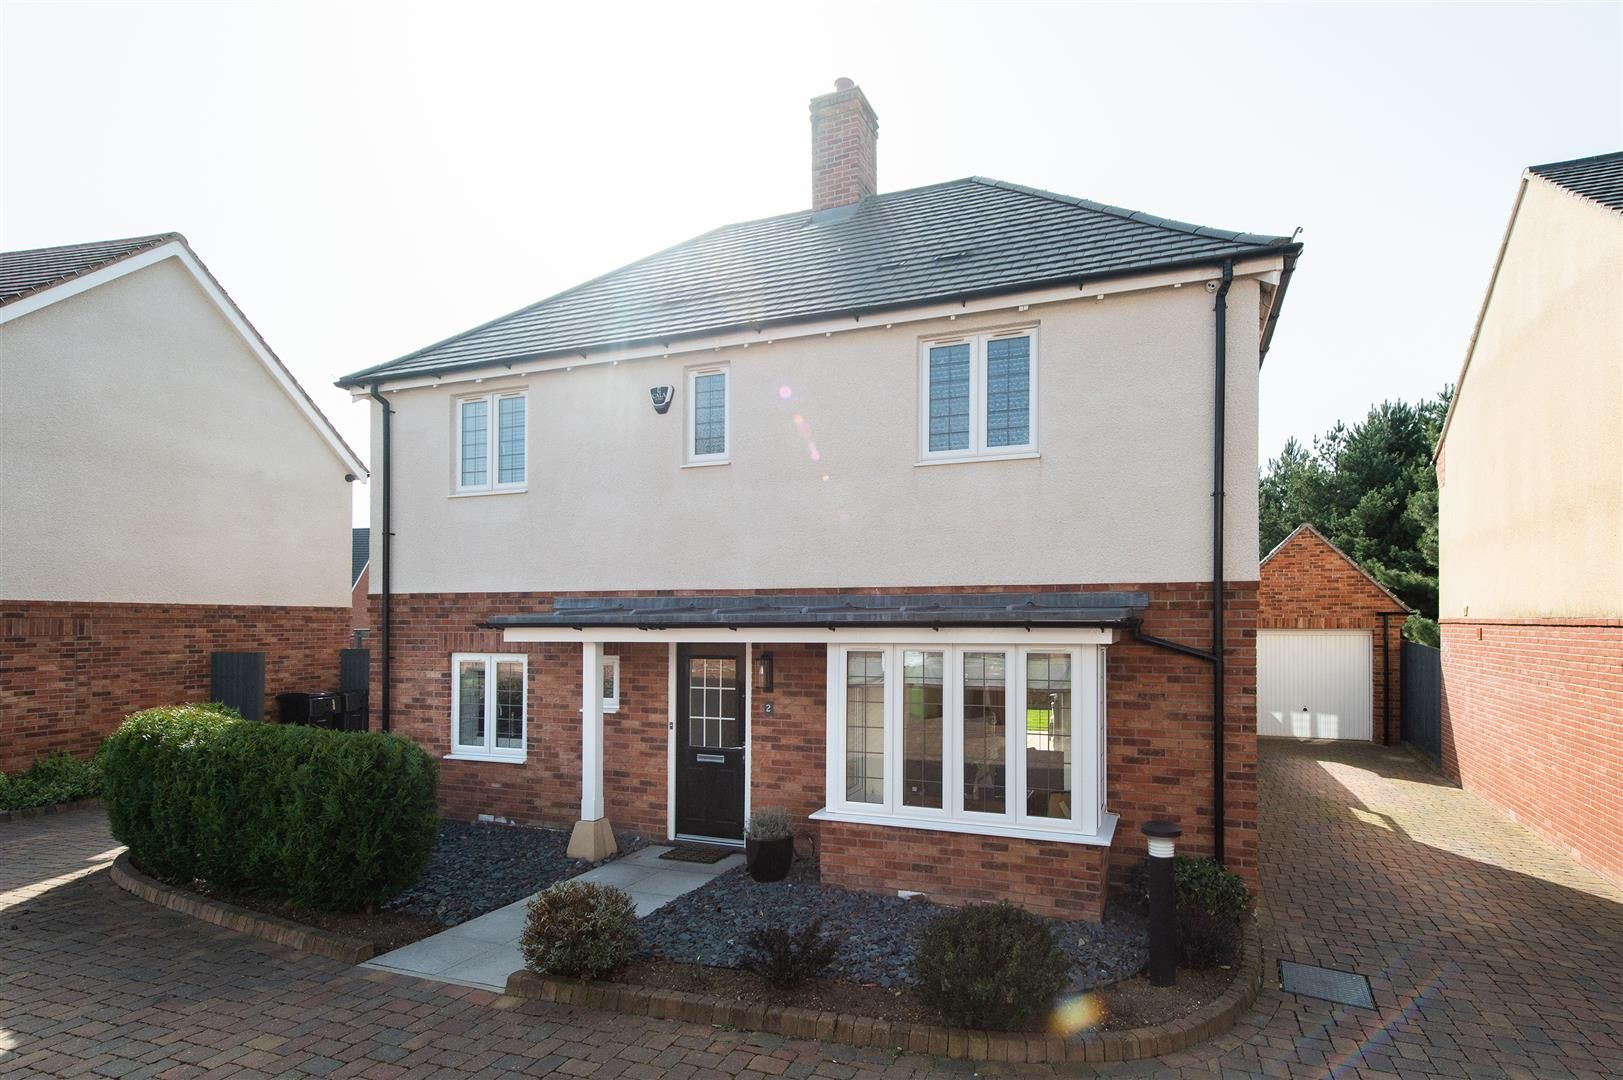 3 bed detached for sale in Hagley 32